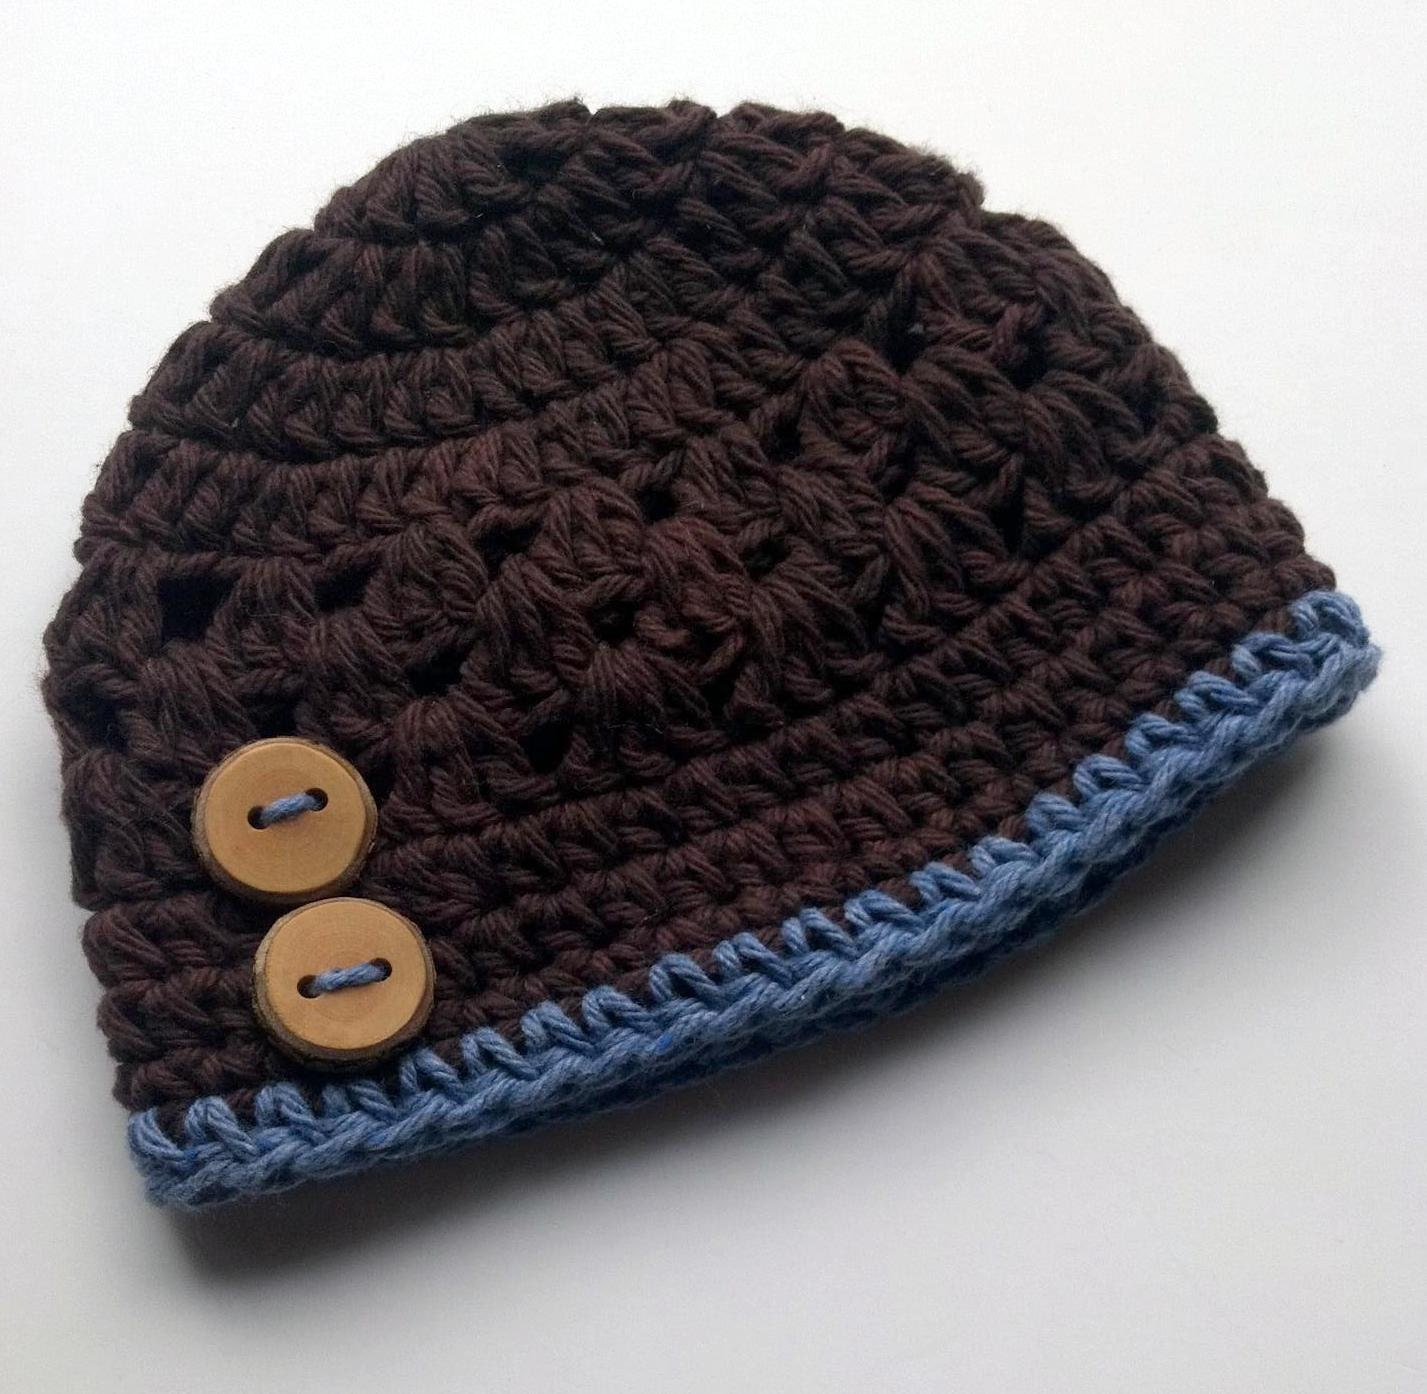 You searched for: baby boy beanie hat! Etsy is the home to thousands of handmade, vintage, and one-of-a-kind products and gifts related to your search. No matter what you're looking for or where you are in the world, our global marketplace of sellers can help you .